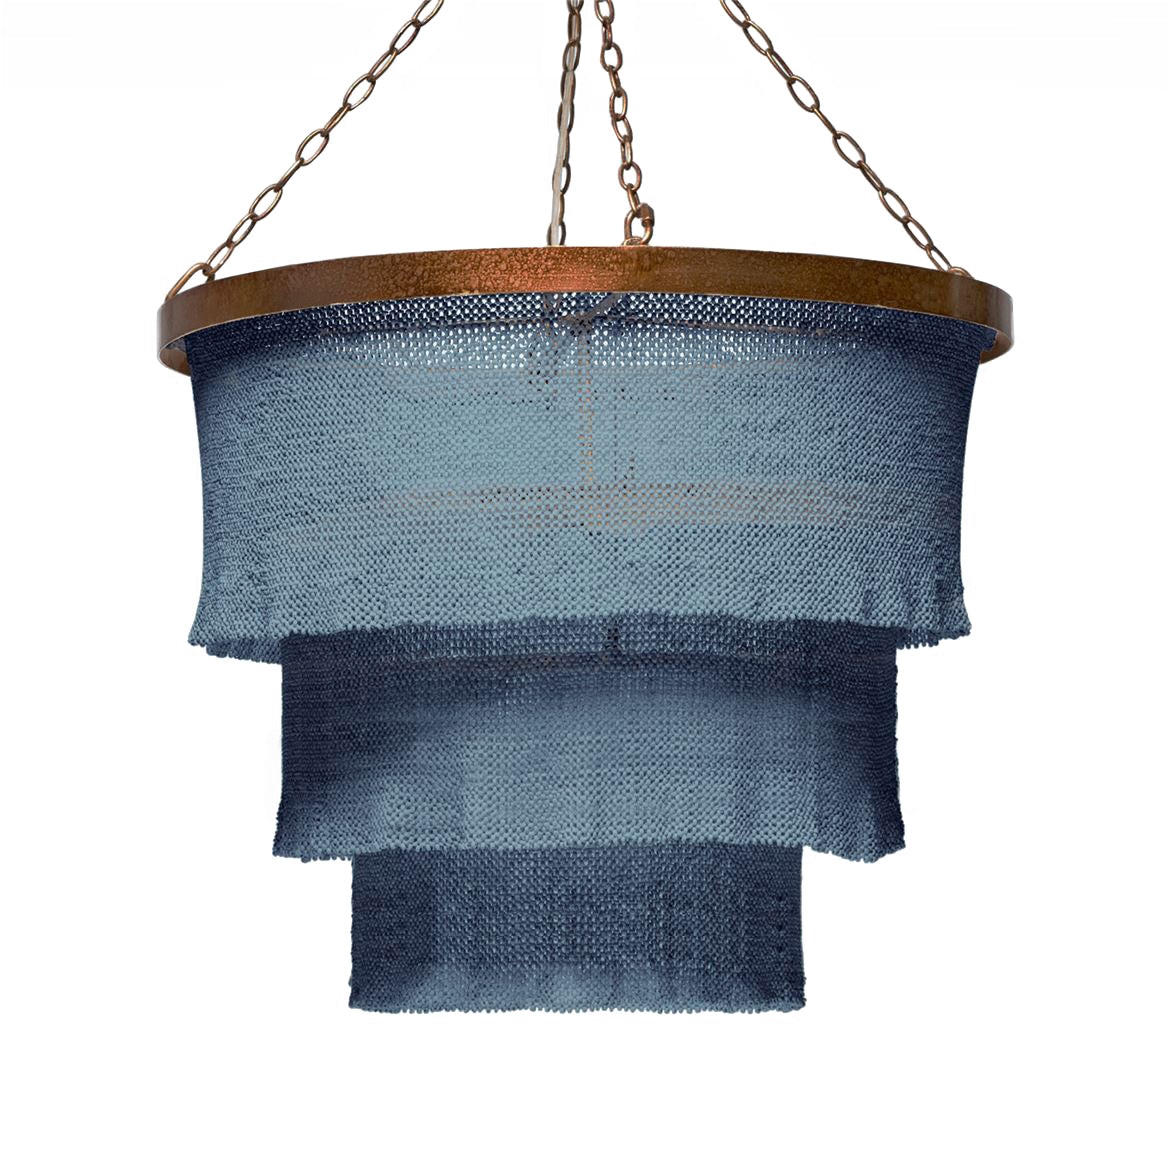 Made Goods Patricia Chandelier Dusty Blue and Gold